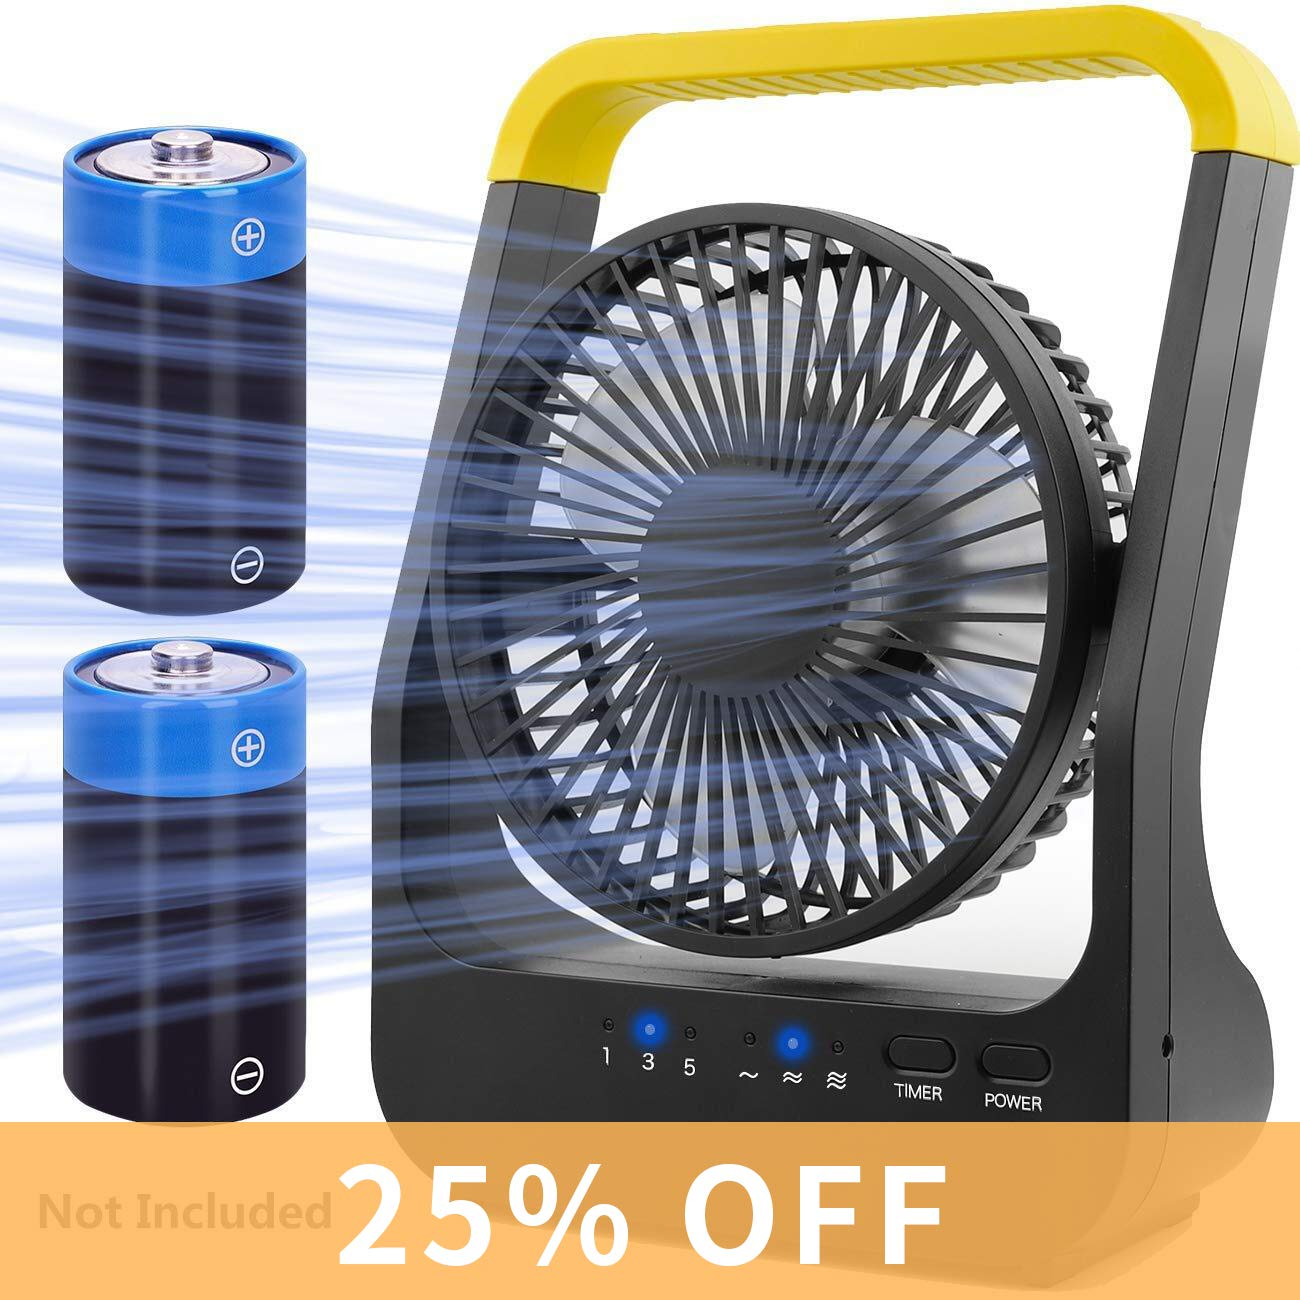 Battery Operated Fan, Super Long Lasting Battery Operated Fans for Camping, Portable D-Cell Battery Powered Desk Fan with Timer, 3 Speeds, Whisper Quiet, 180 Rotation, for Office,Bedroom,Outdoor, 5